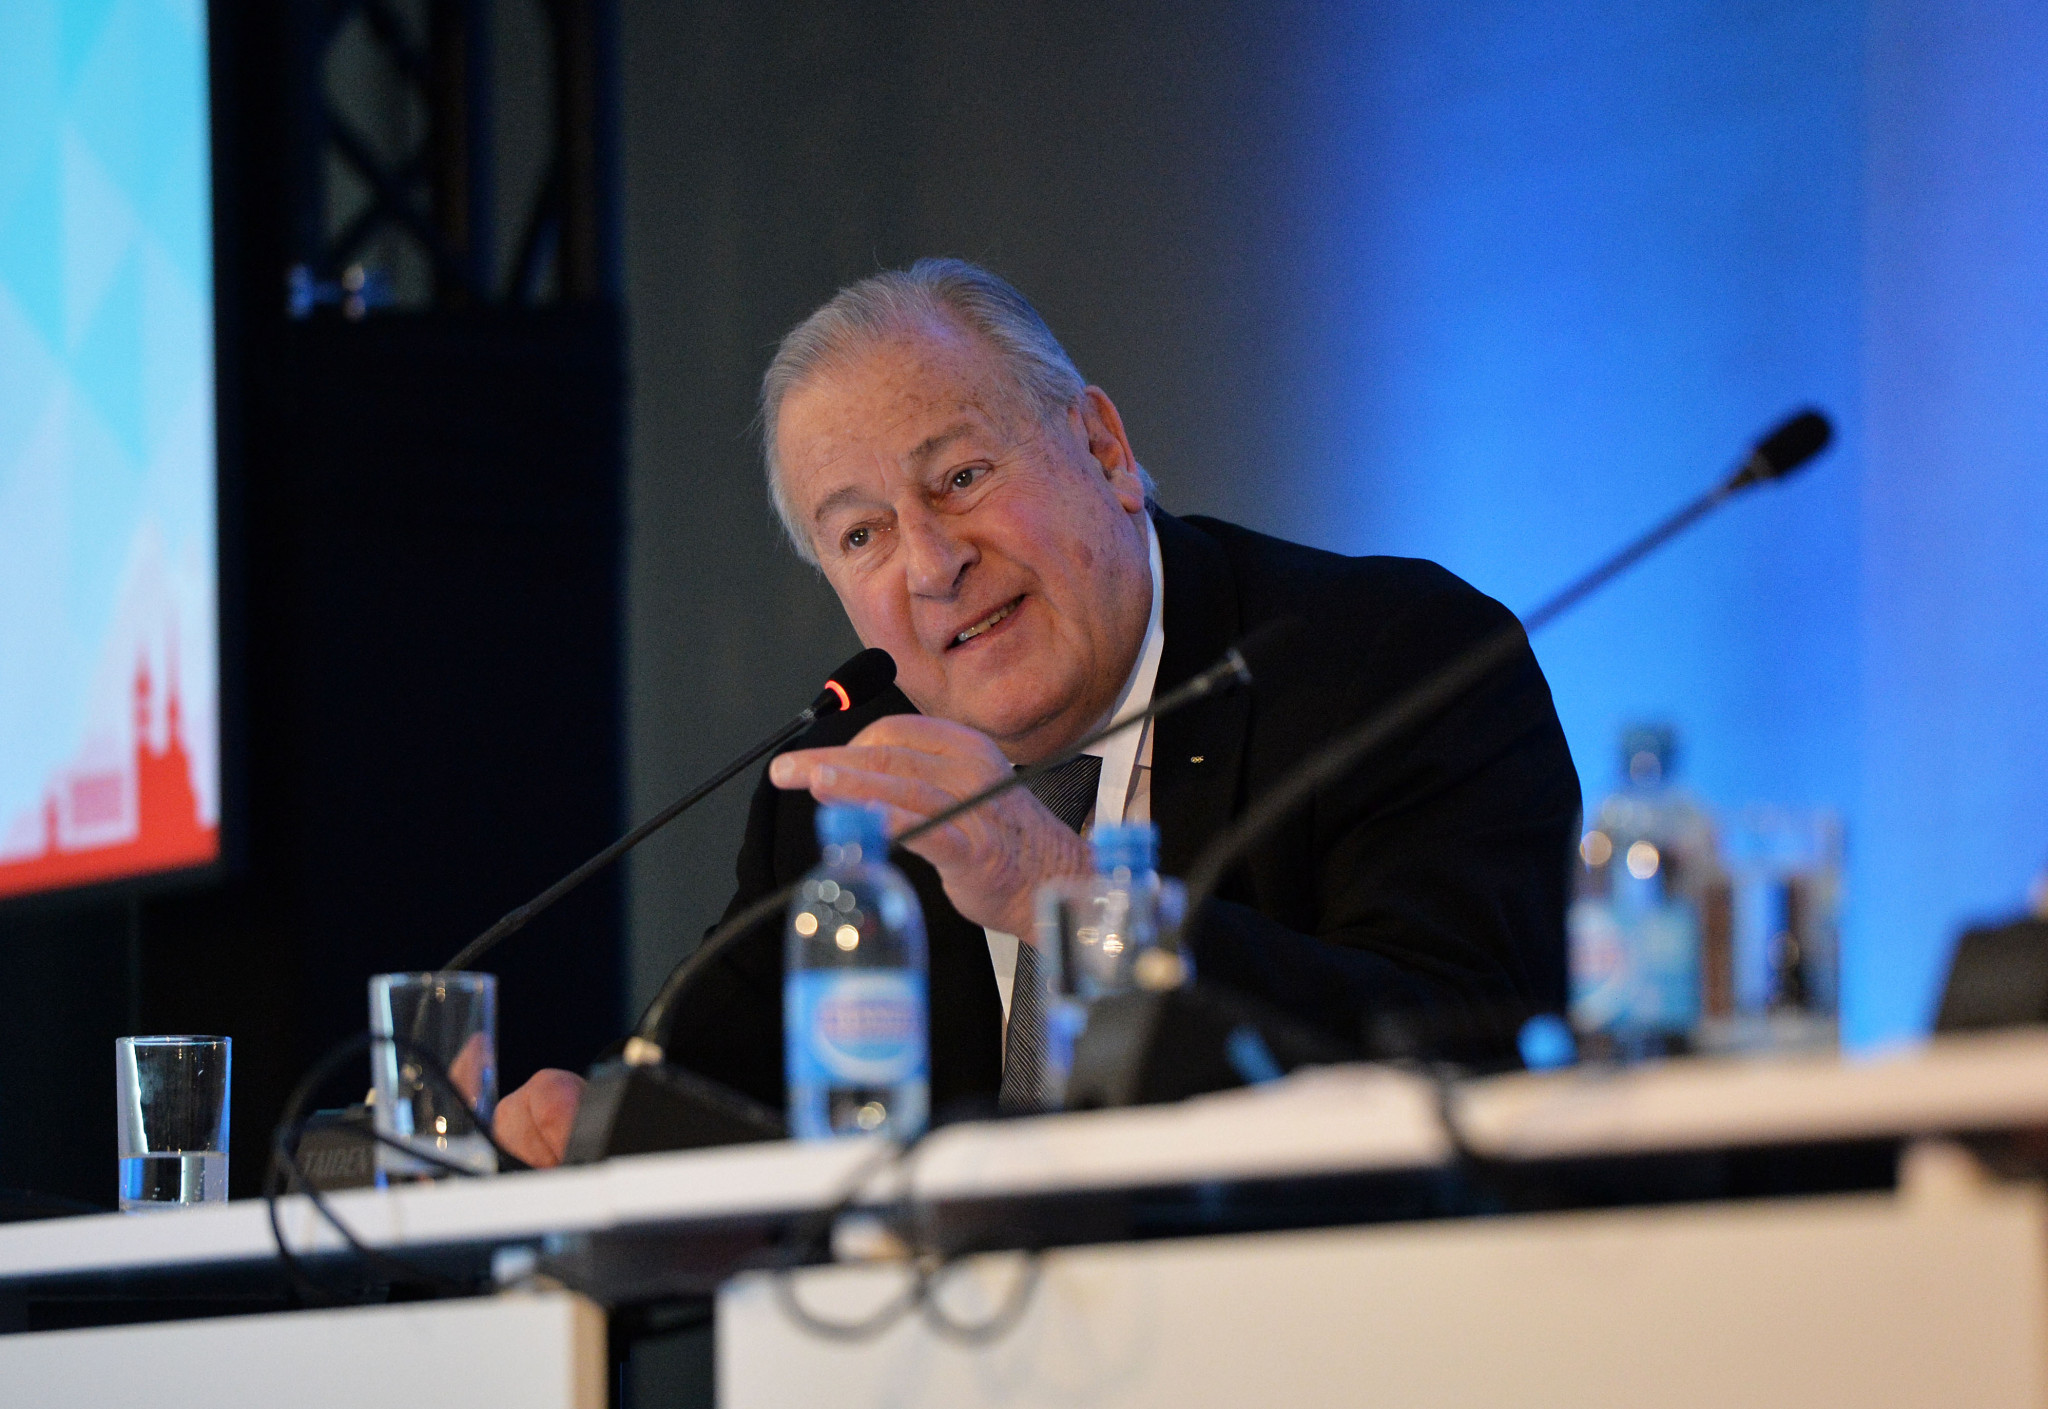 Former IOC director general François Carrard is among the members elected to the Gymnastics Ethics Foundation Council ©Getty Images